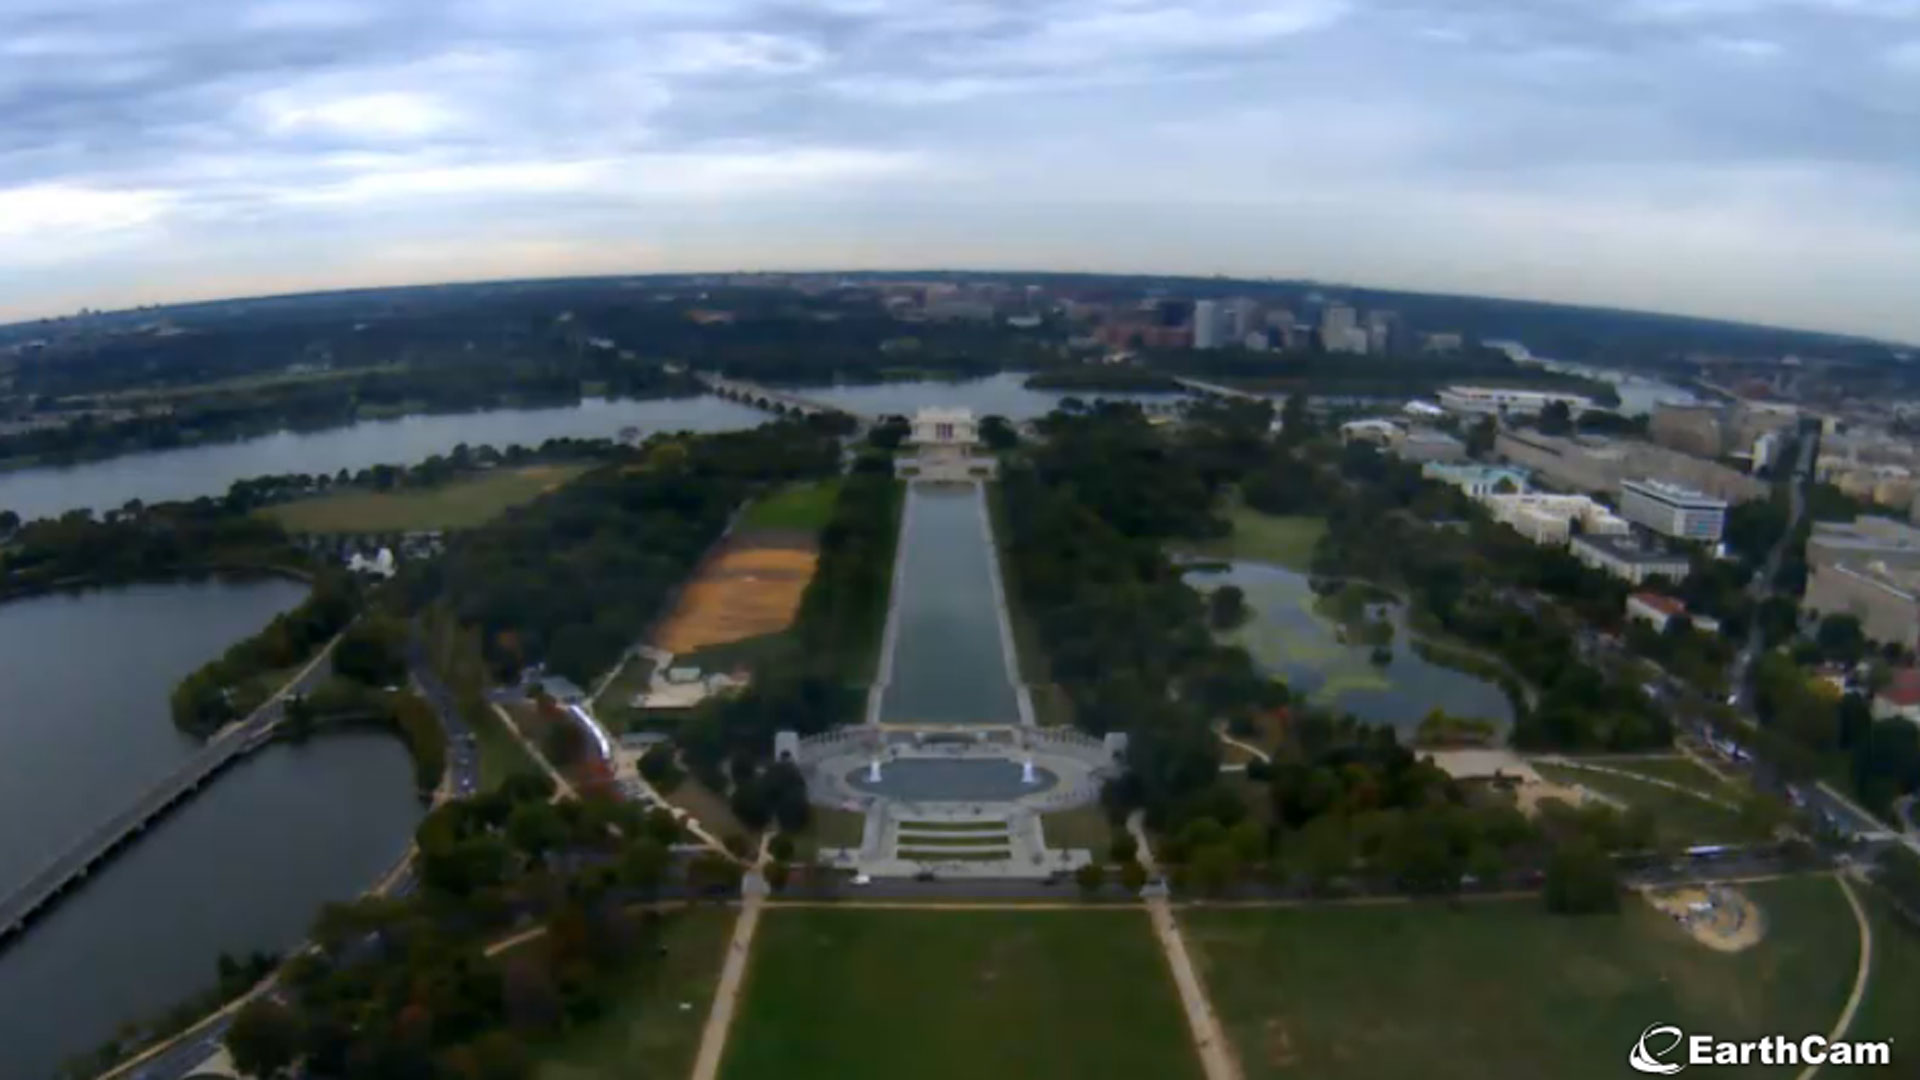 Earthcam And National Park Service Provide Live Views From